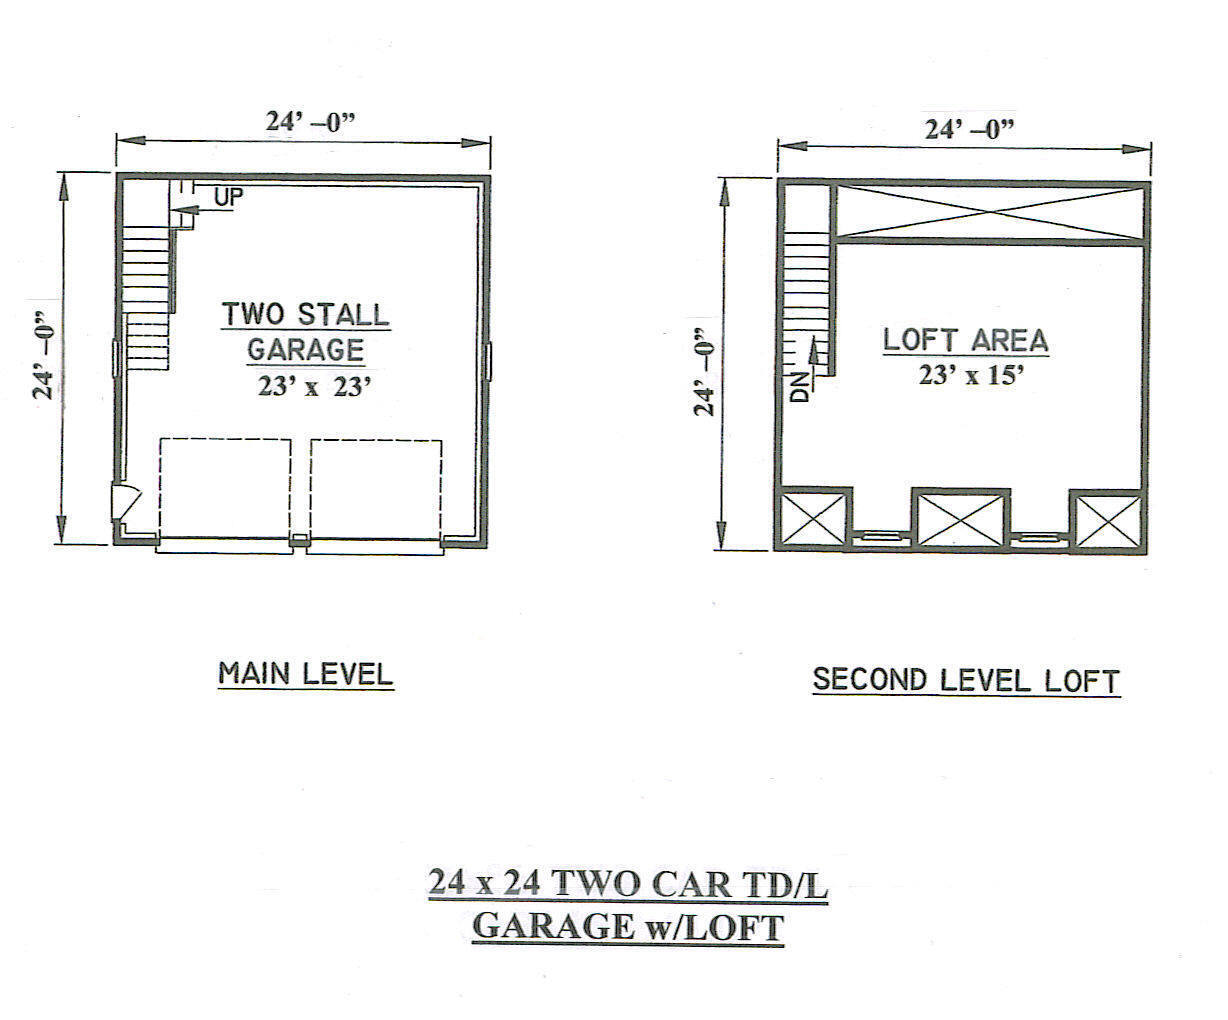 24x24 2 car tdormer ld interior loft stairs garage for 24x24 house plans with loft